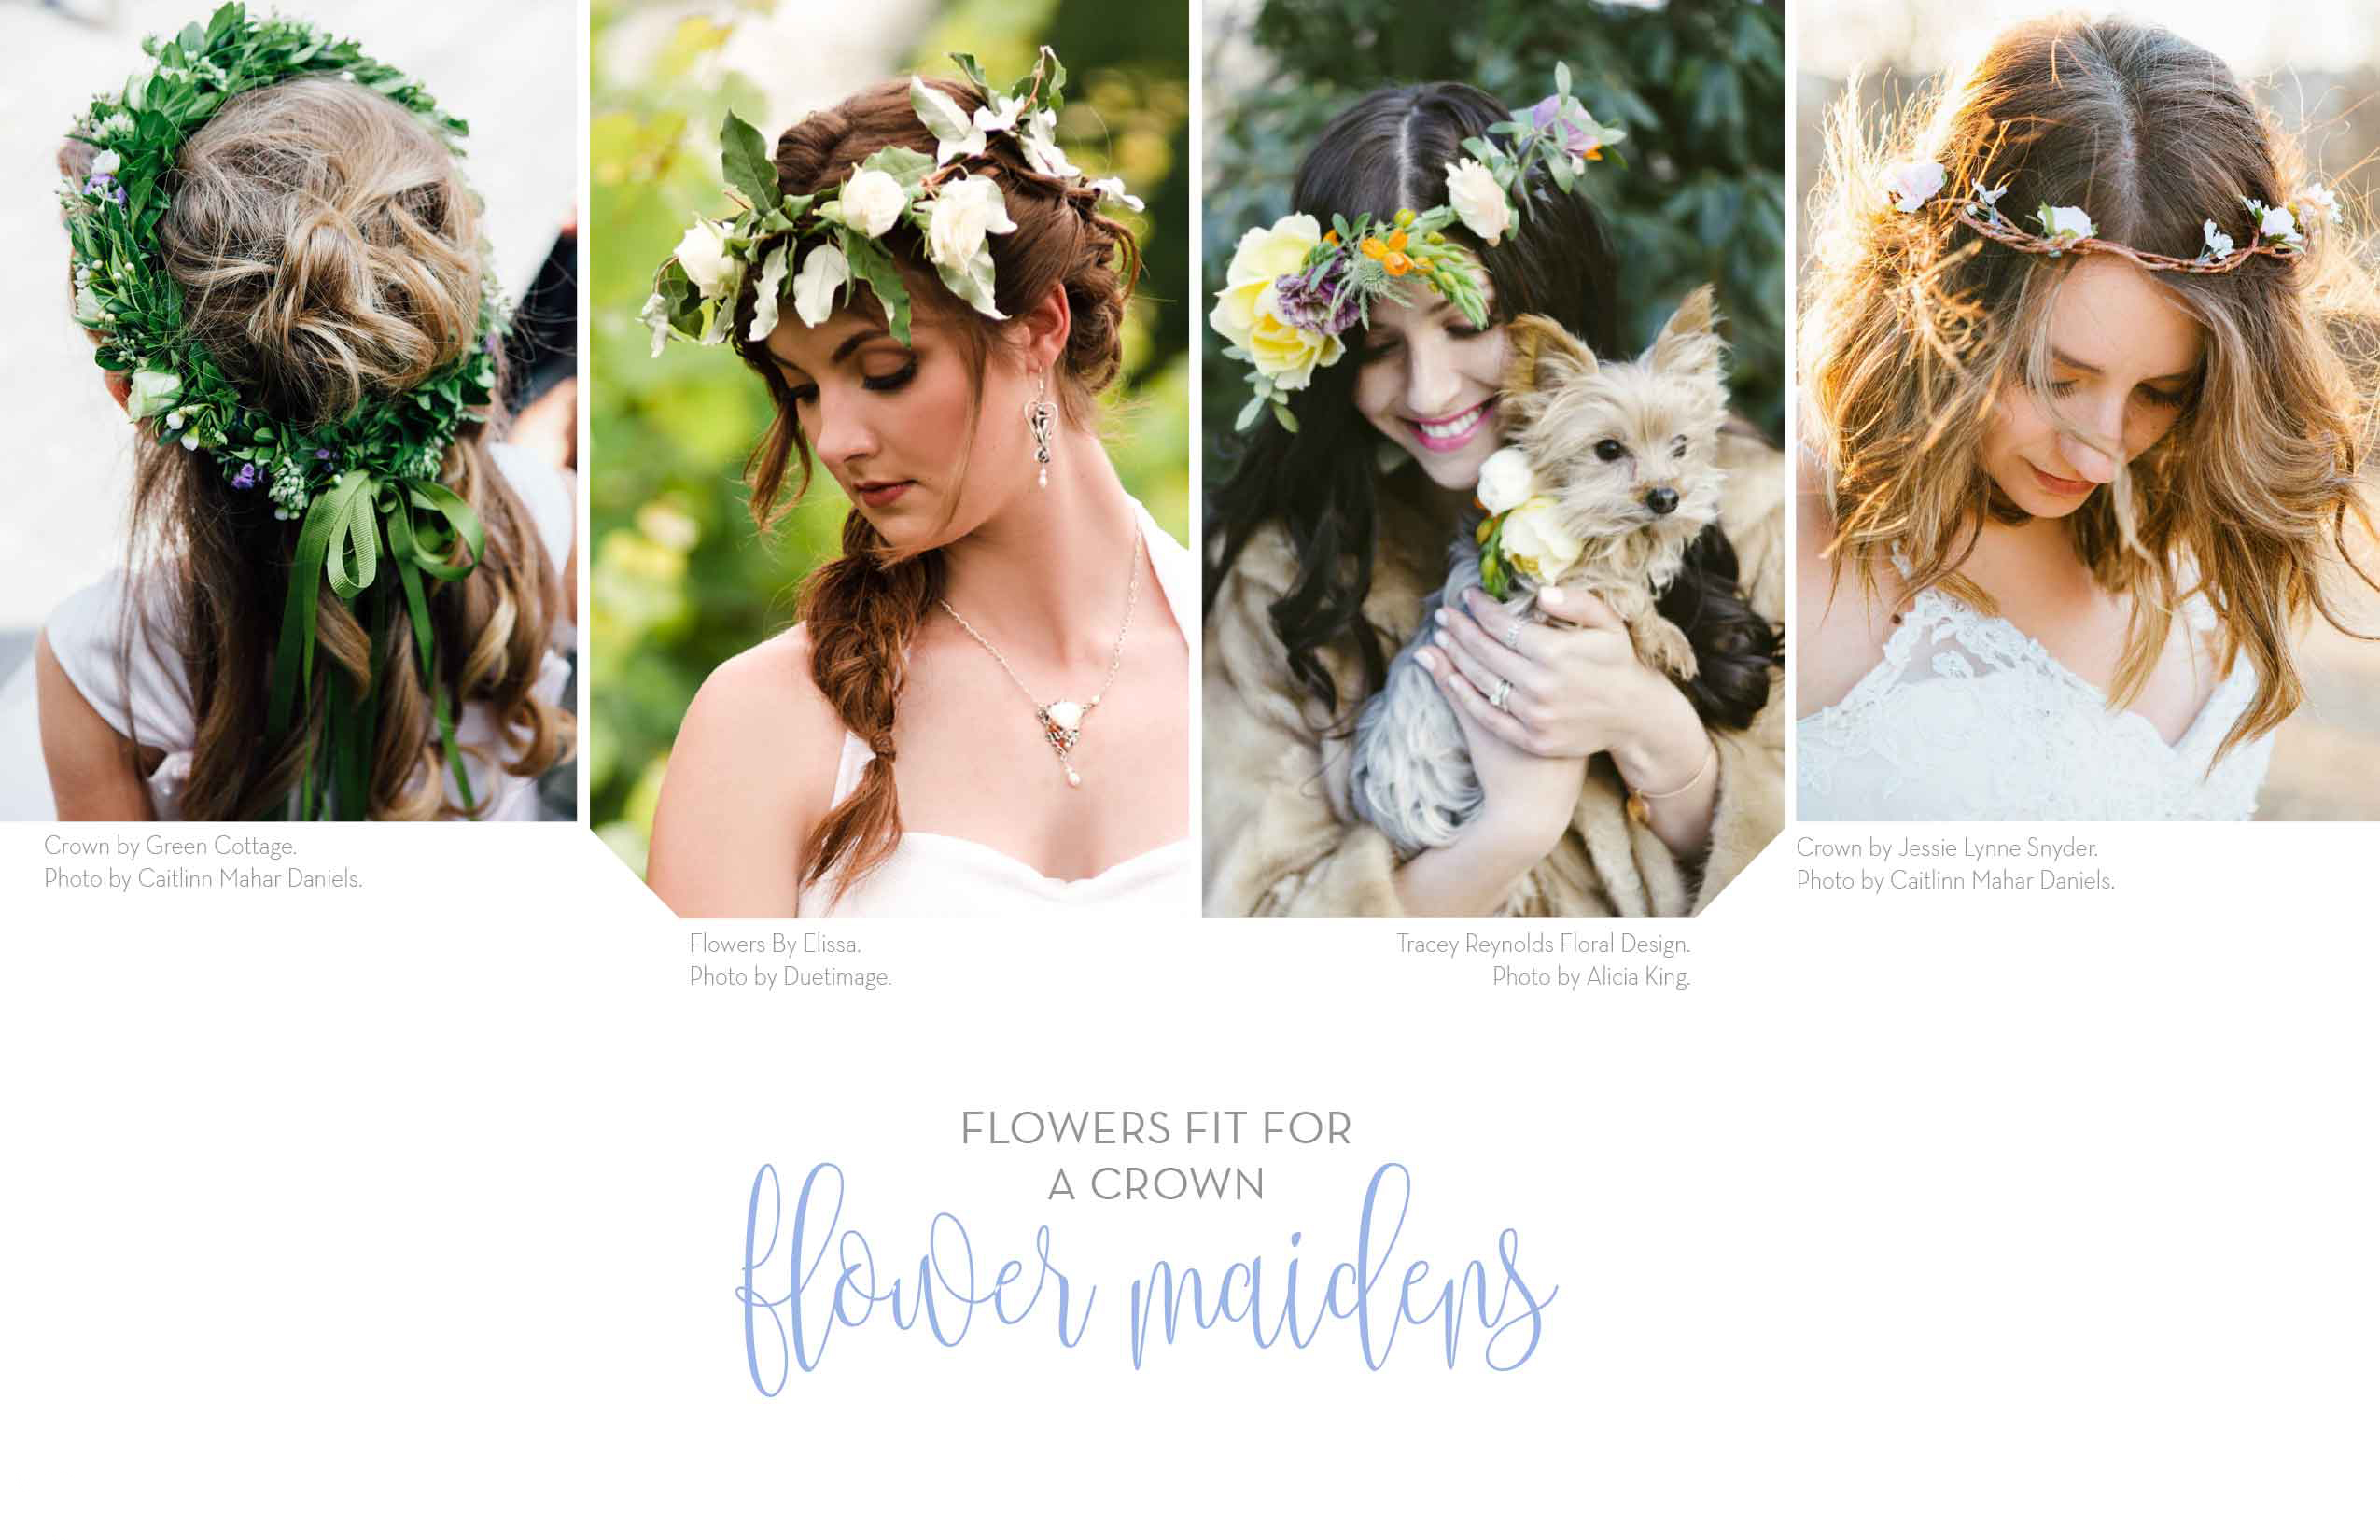 Wedding guide 2016 flowers fit for a crown flower maidens flowers fit for a crown flower maidens izmirmasajfo